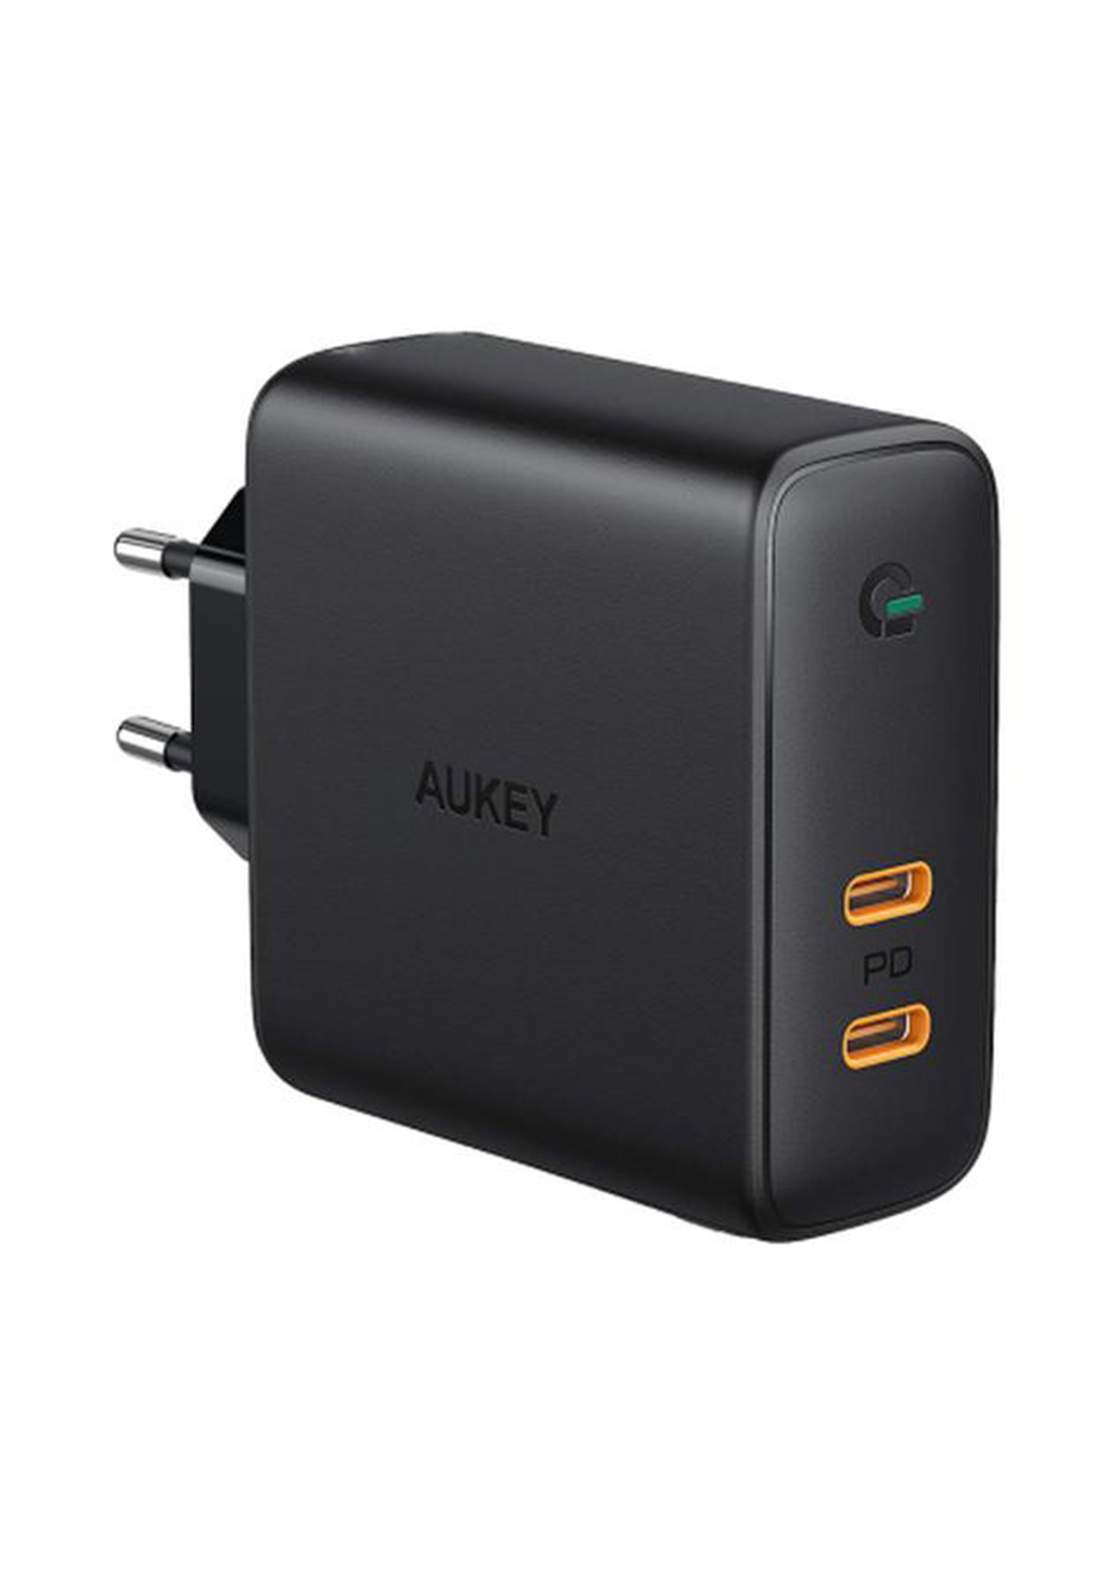 Aukey PA-D5 63W USB C Power Delivery Charger with Dynamic Detect  - Black   شاحن